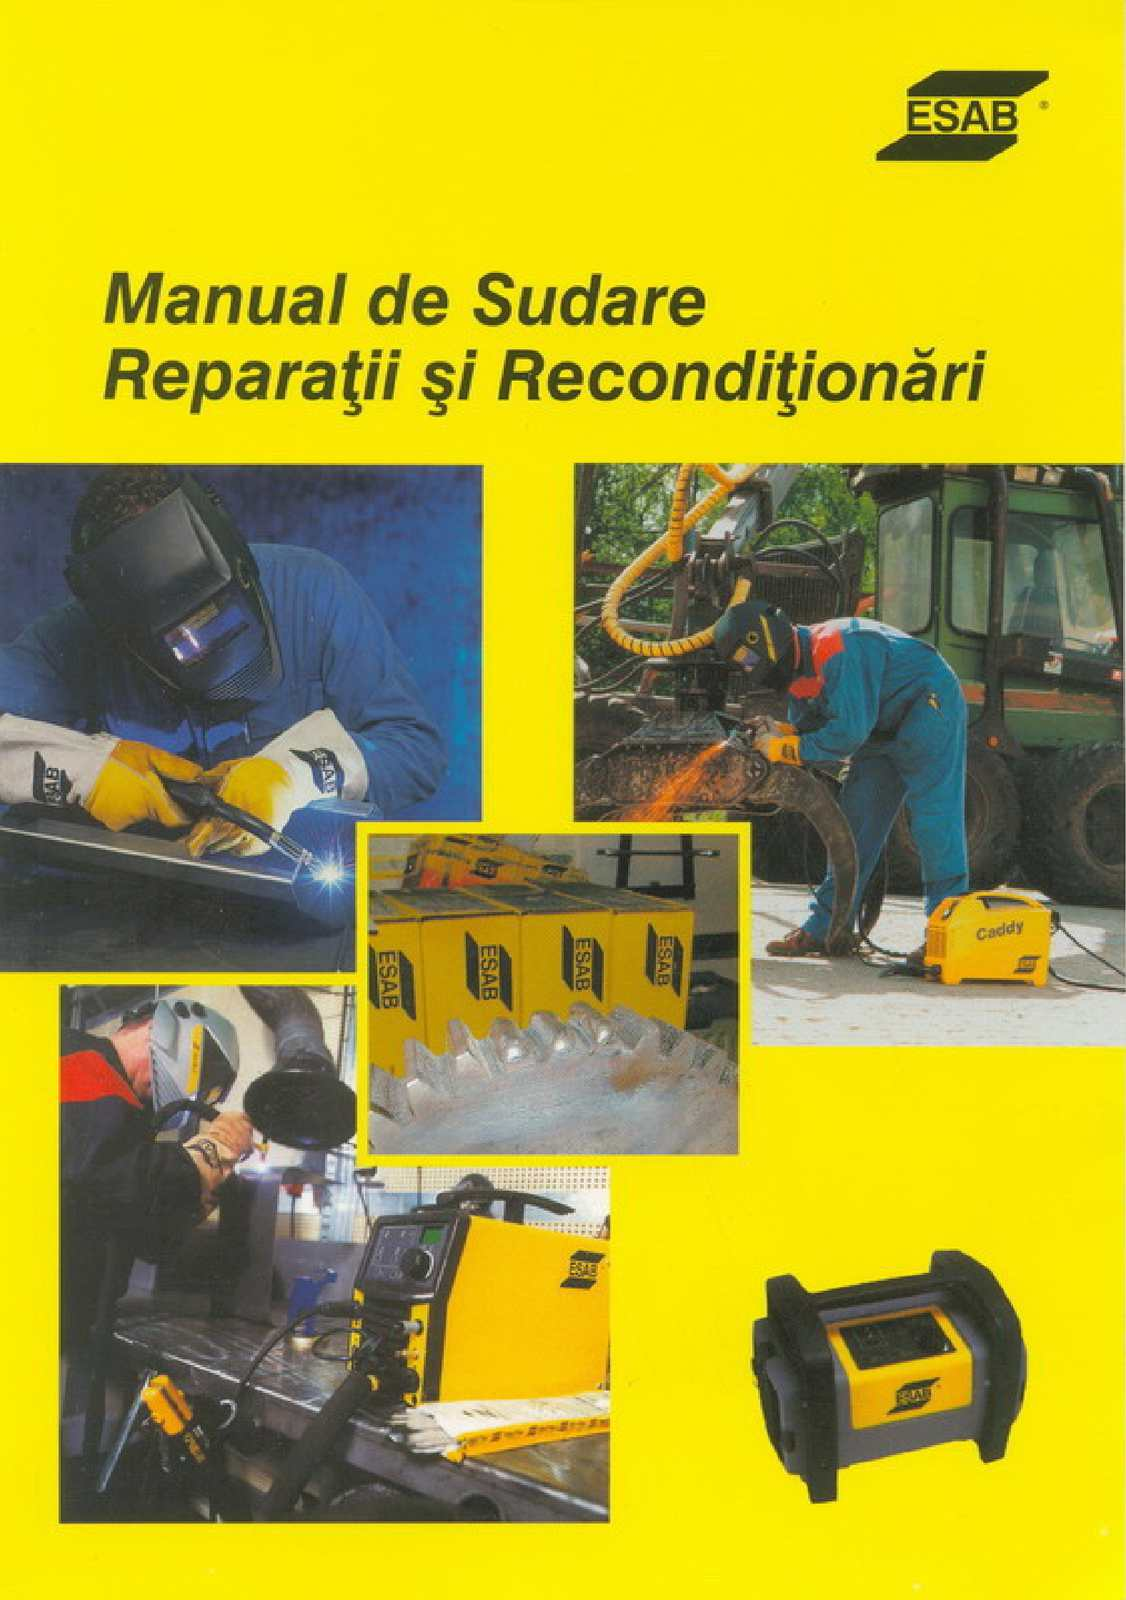 Manual de sudura reparatii si reconditionari Esab (Ro)